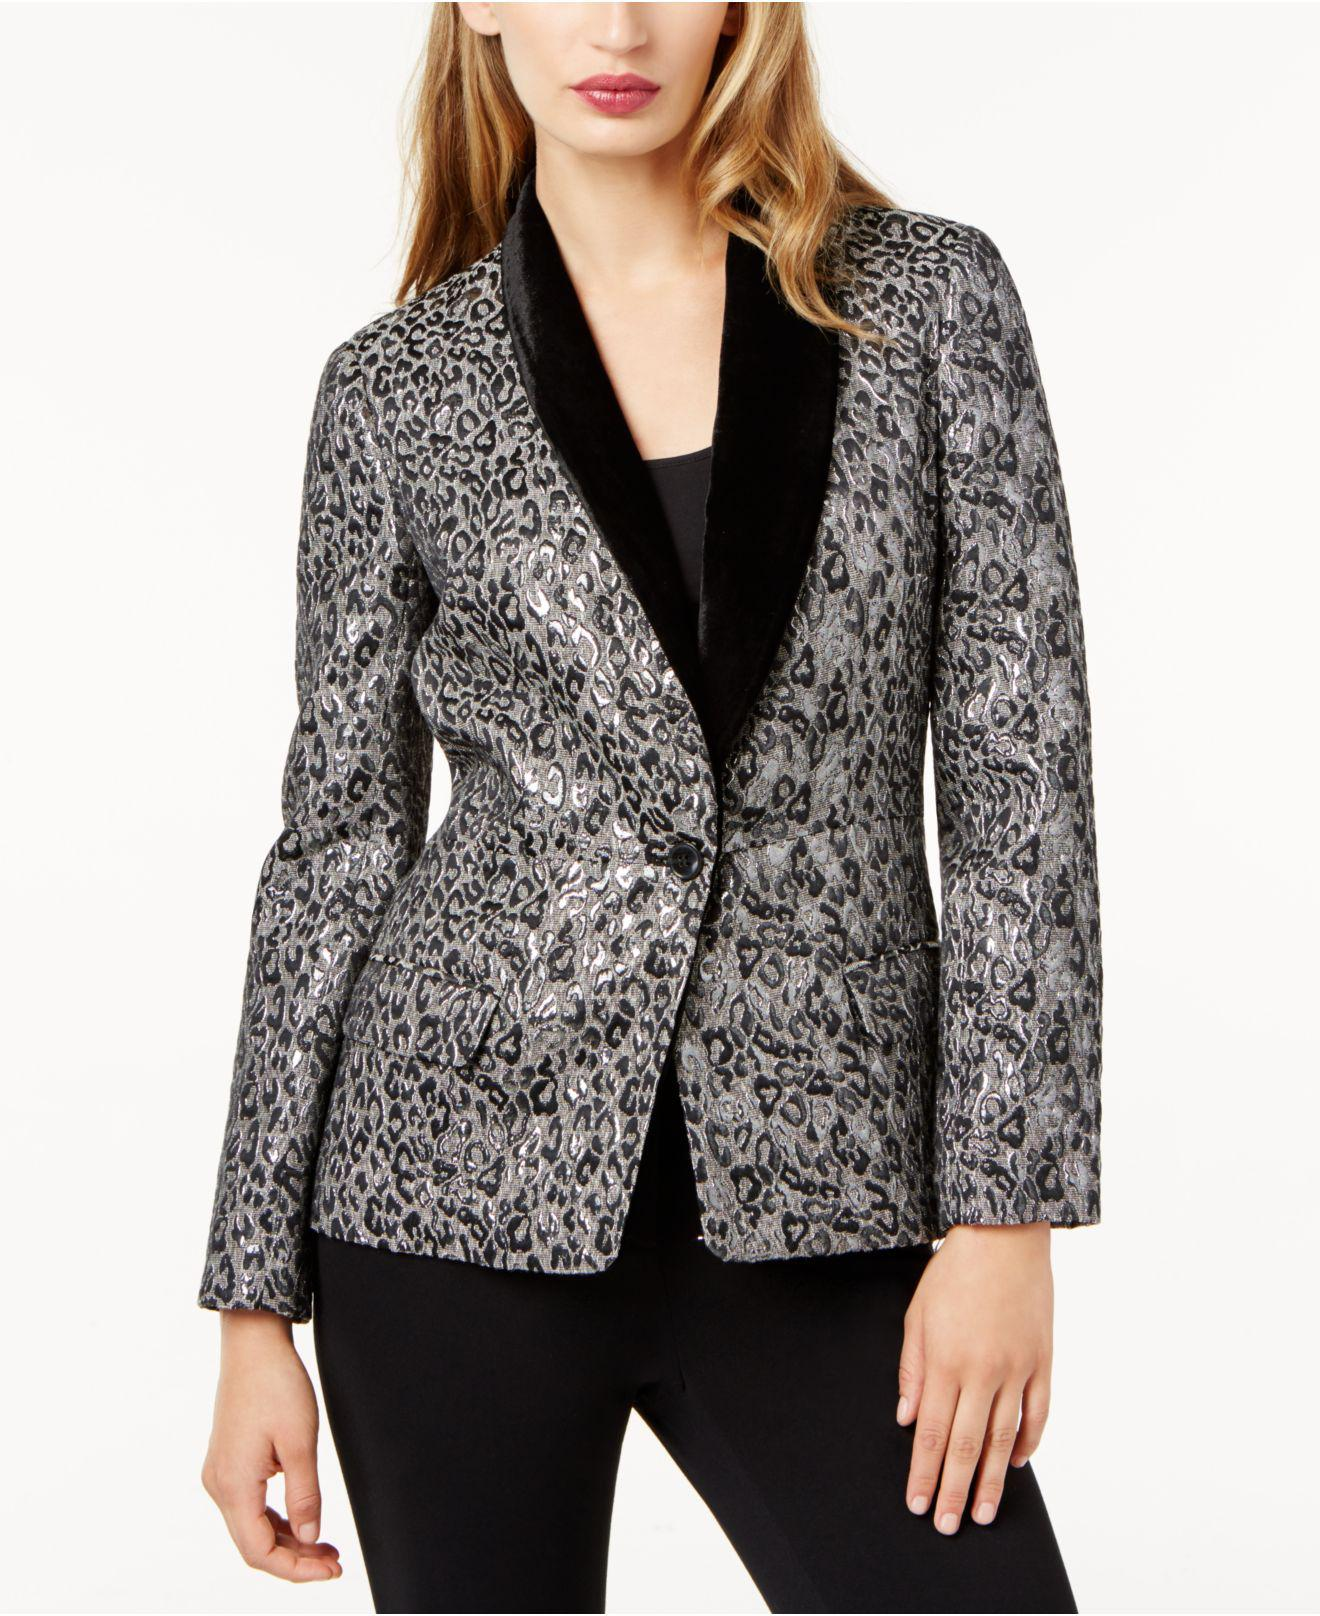 Discount The Cheapest Clearance Official Site Sachin + Babi Silk-Trimmed Notch-Lapel Blazer Low Price Fee Shipping Sale Online Choice Online Clearance New Eswzx0